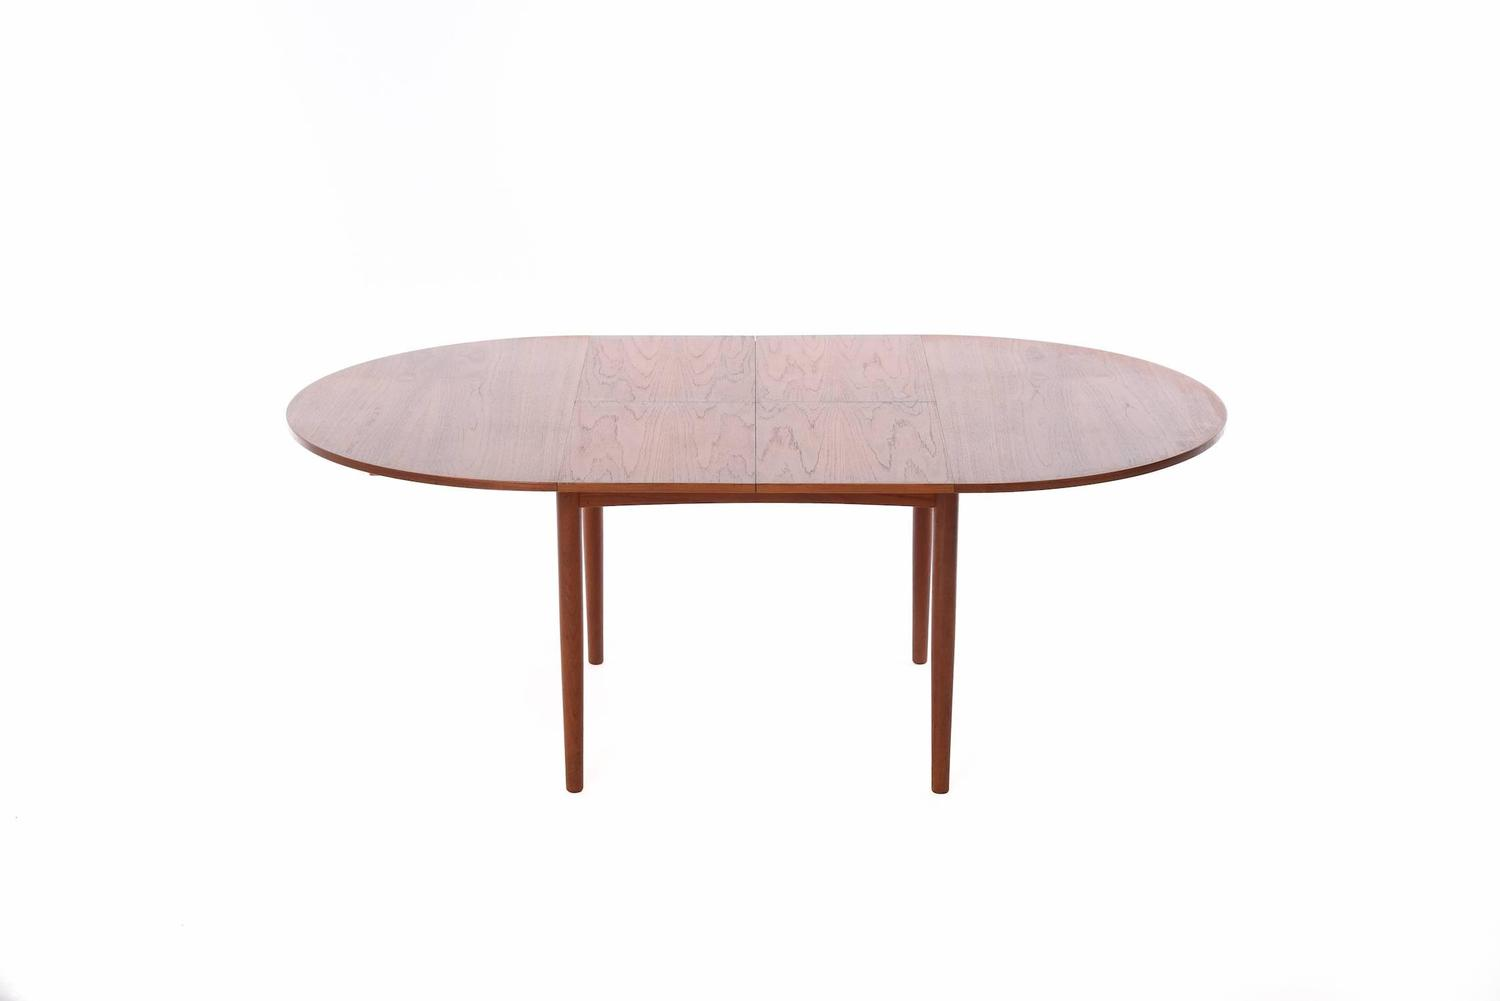 Danish Modern Dining Table With Self Storing Leaves At 1stdibs